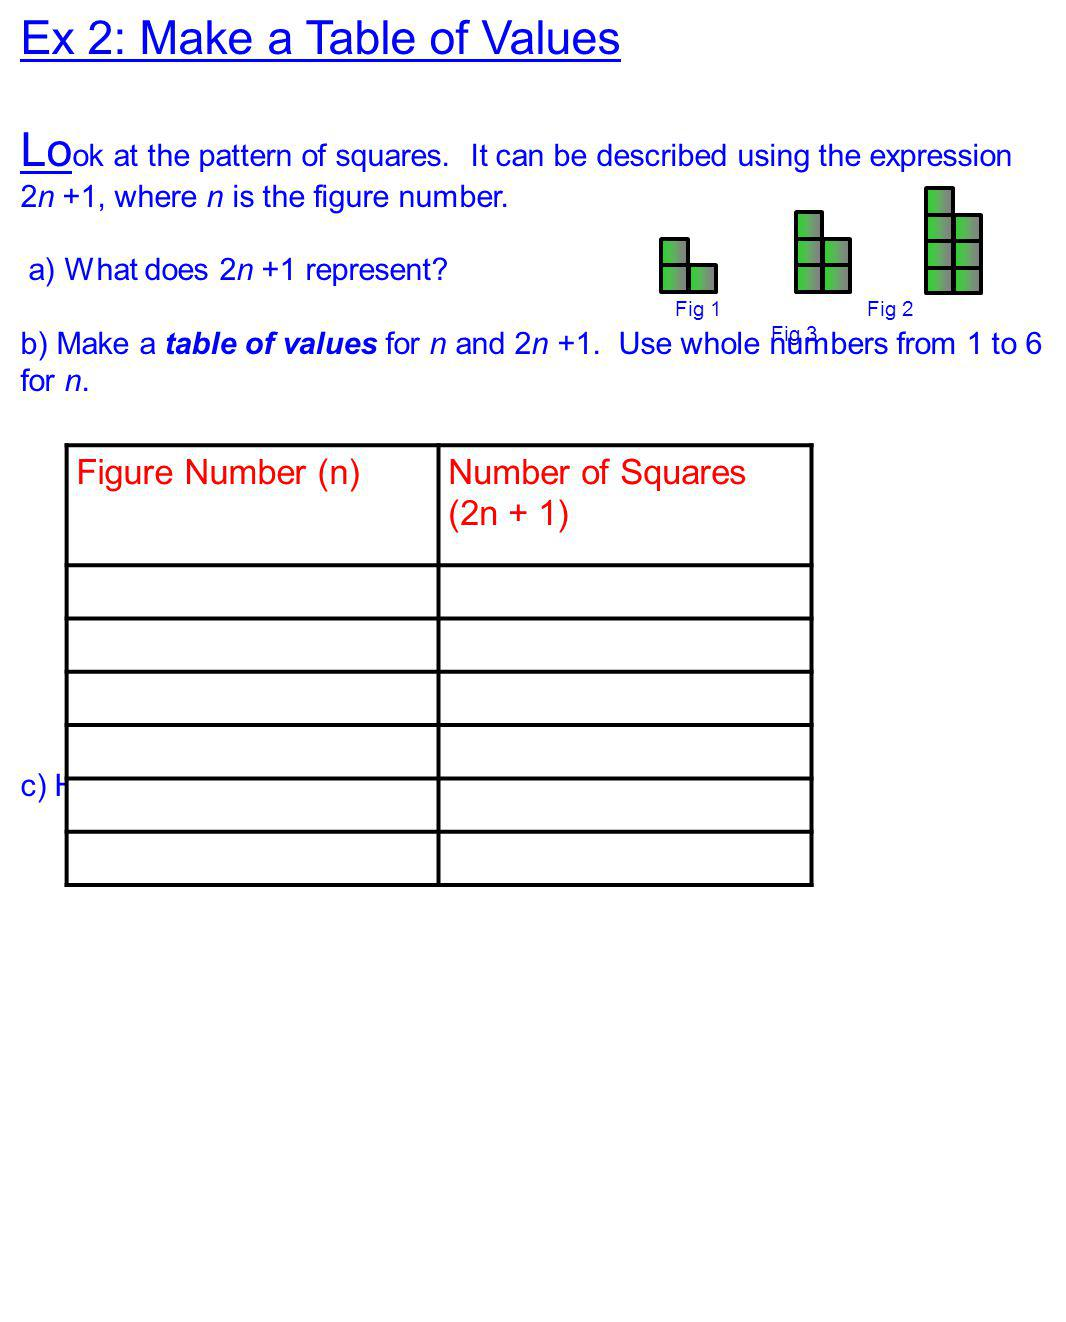 Ex 2: Make a Table of Values